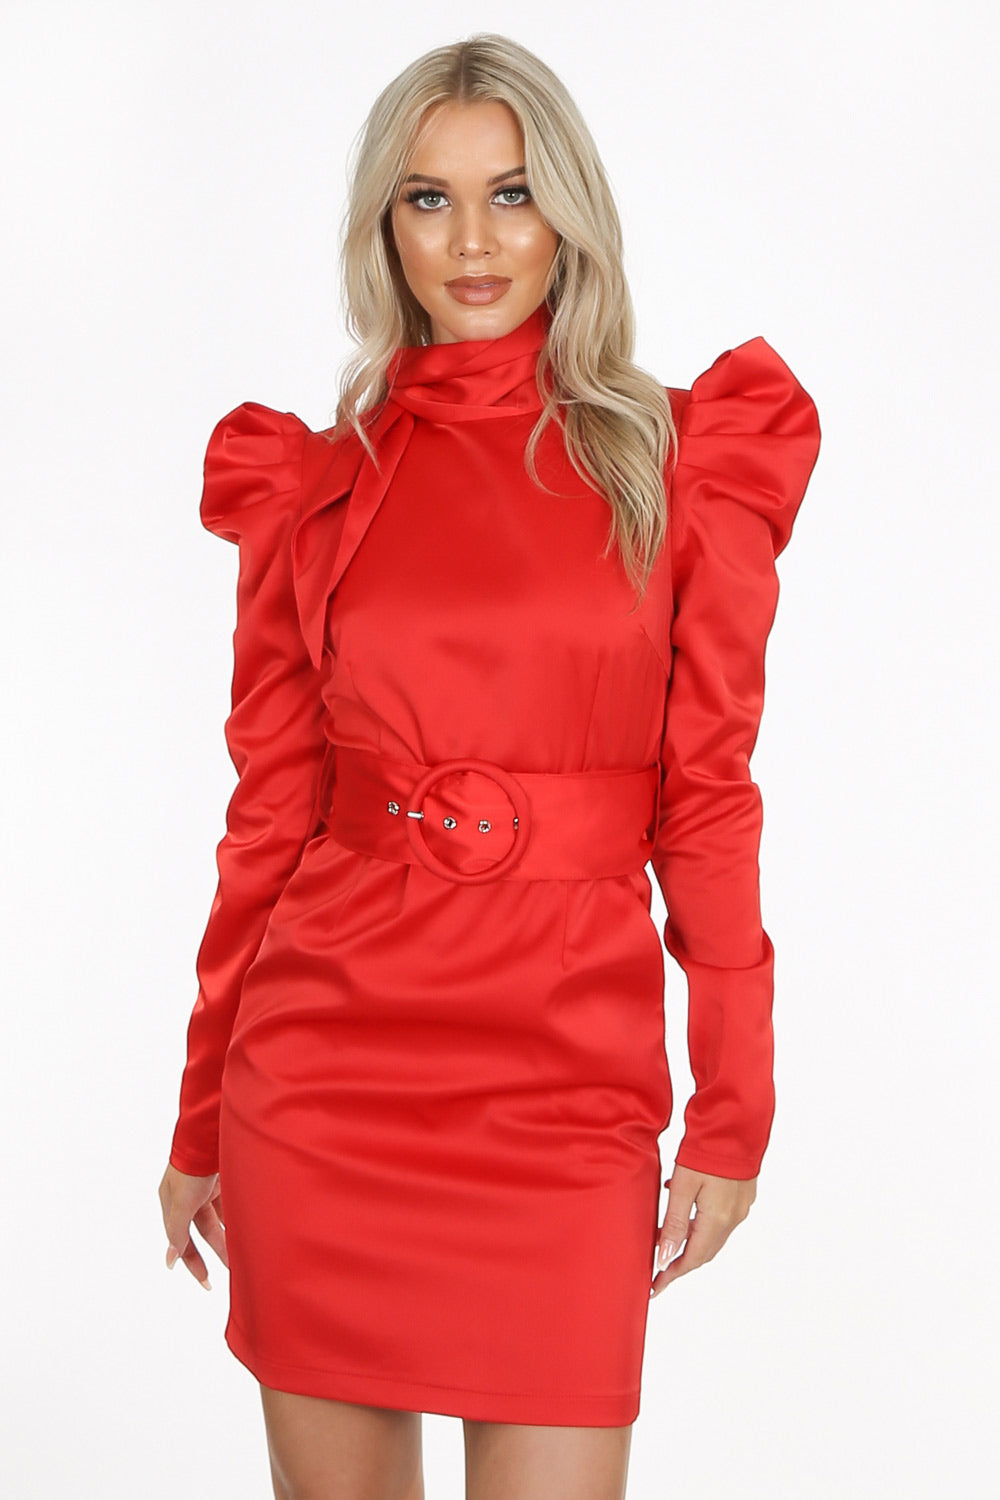 Red Satin High Tie Neck Mini Dress with Belt